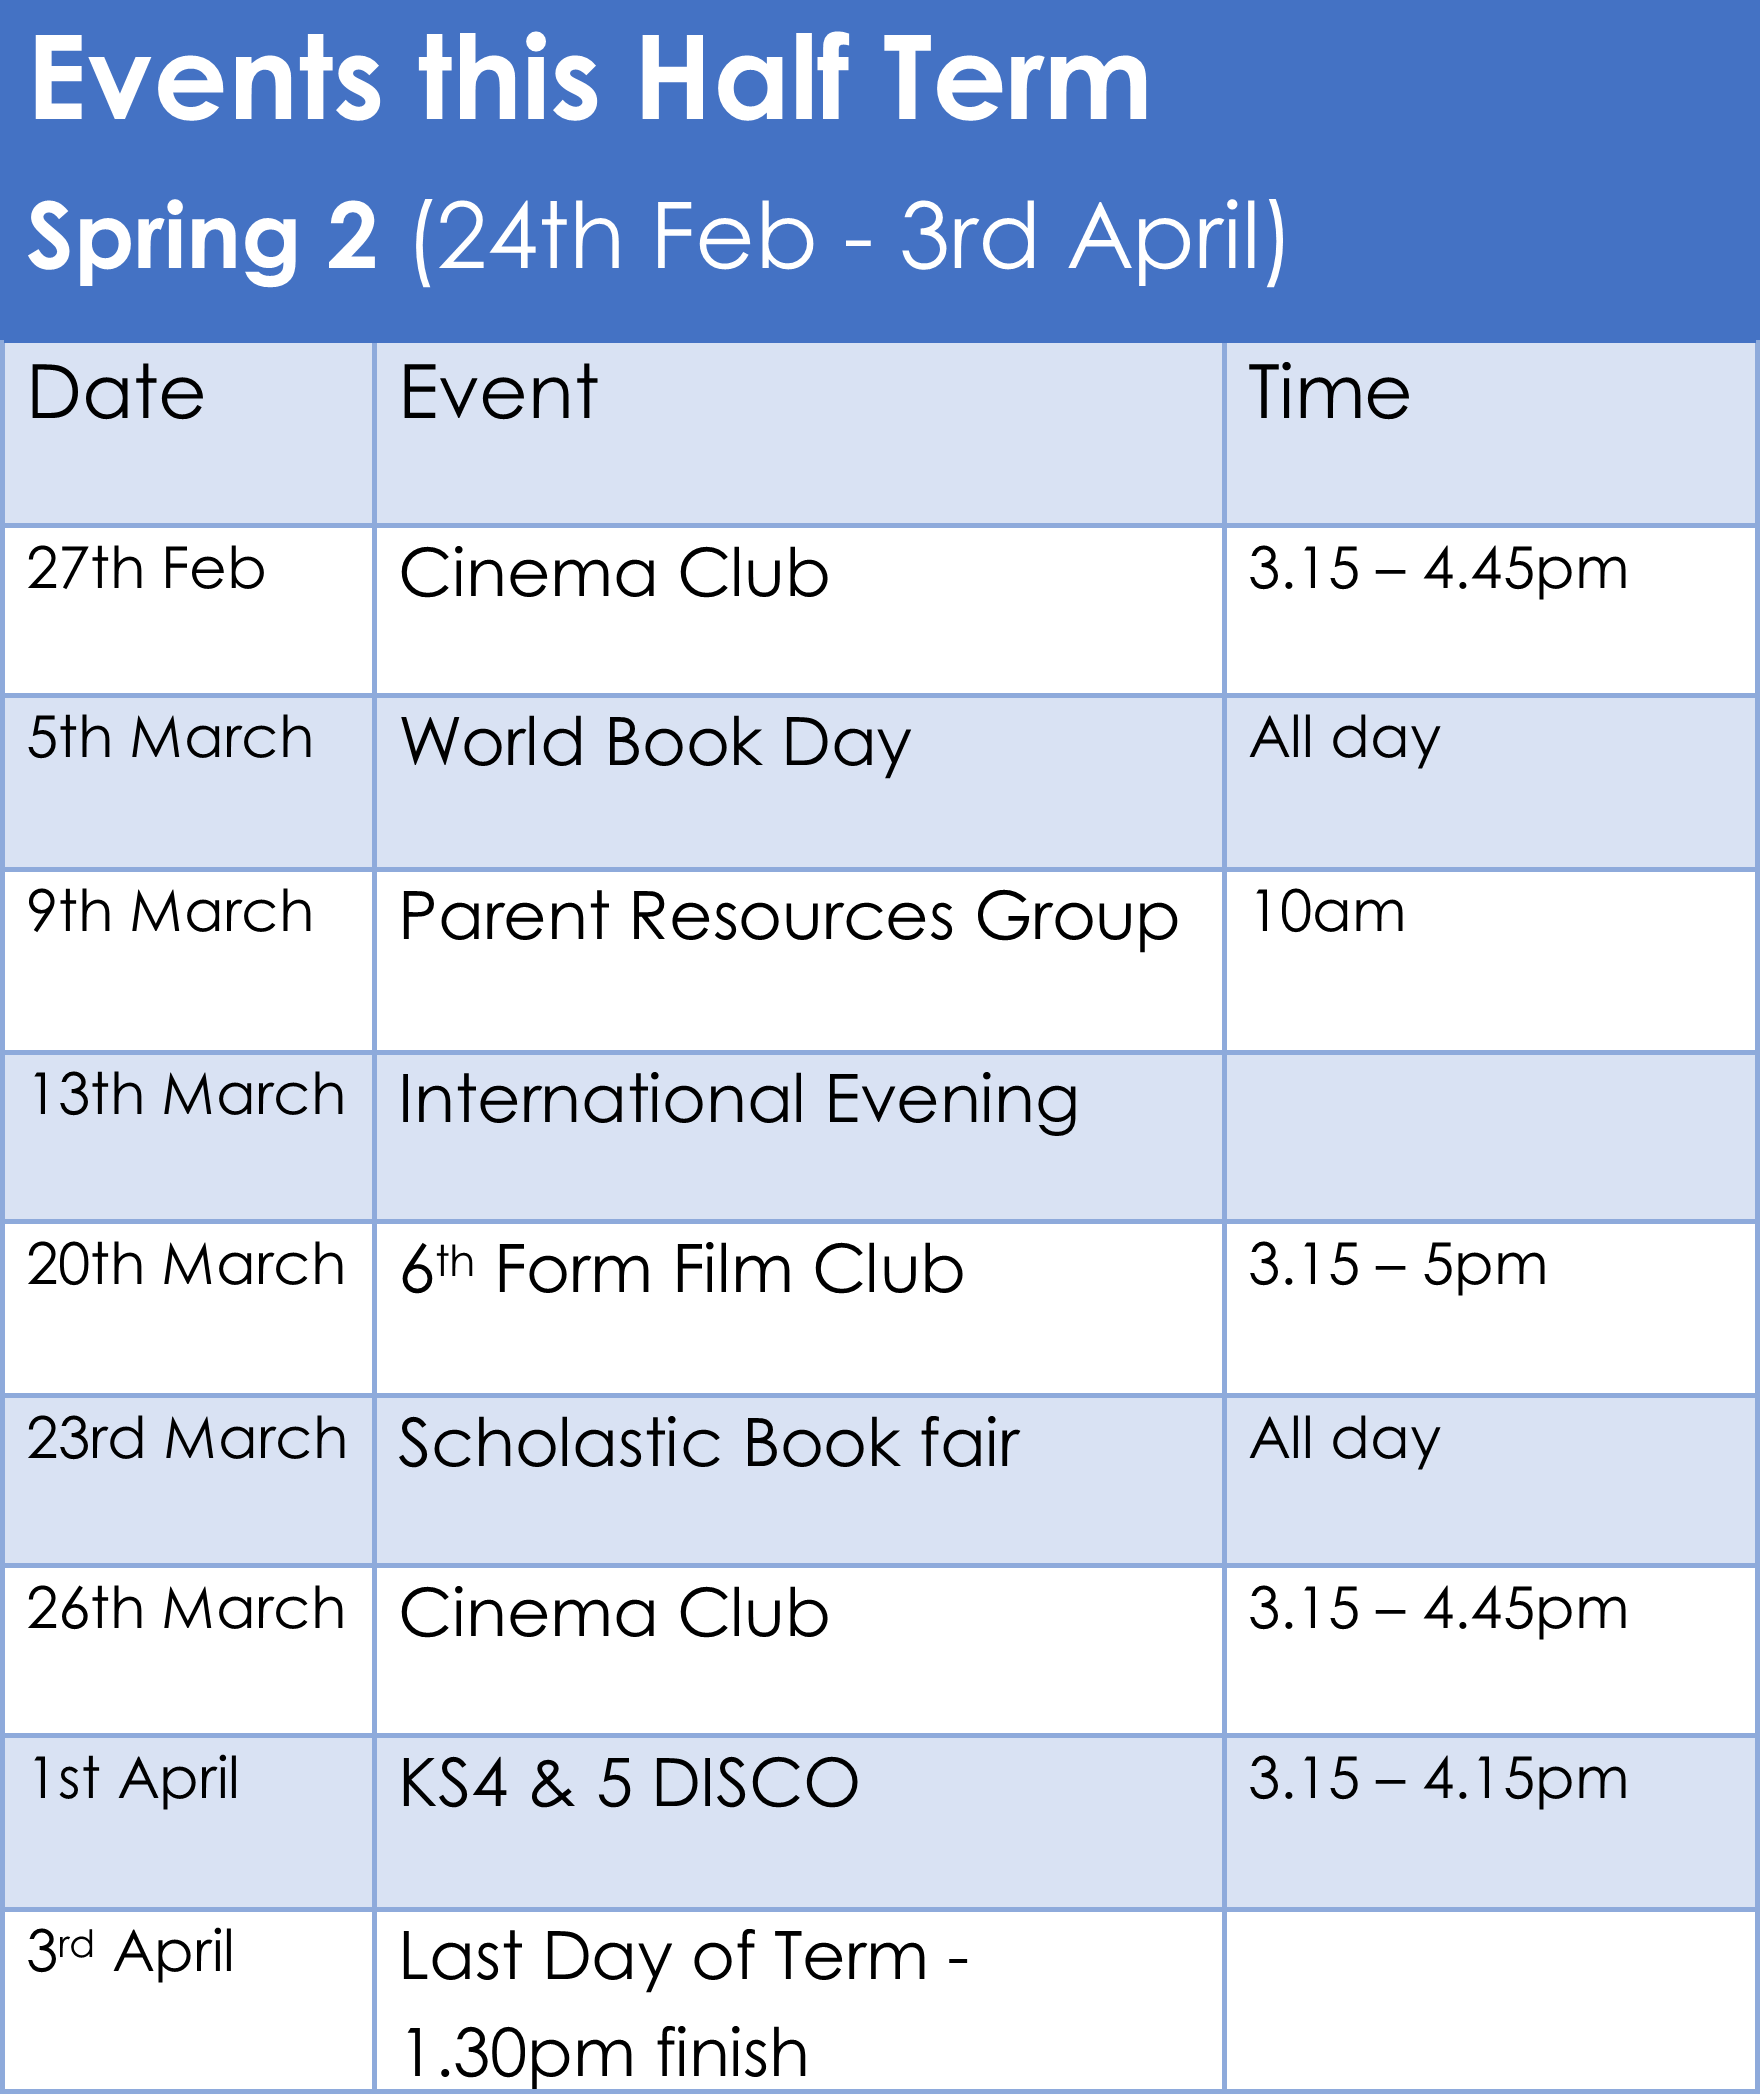 Events - Spring 2 2020